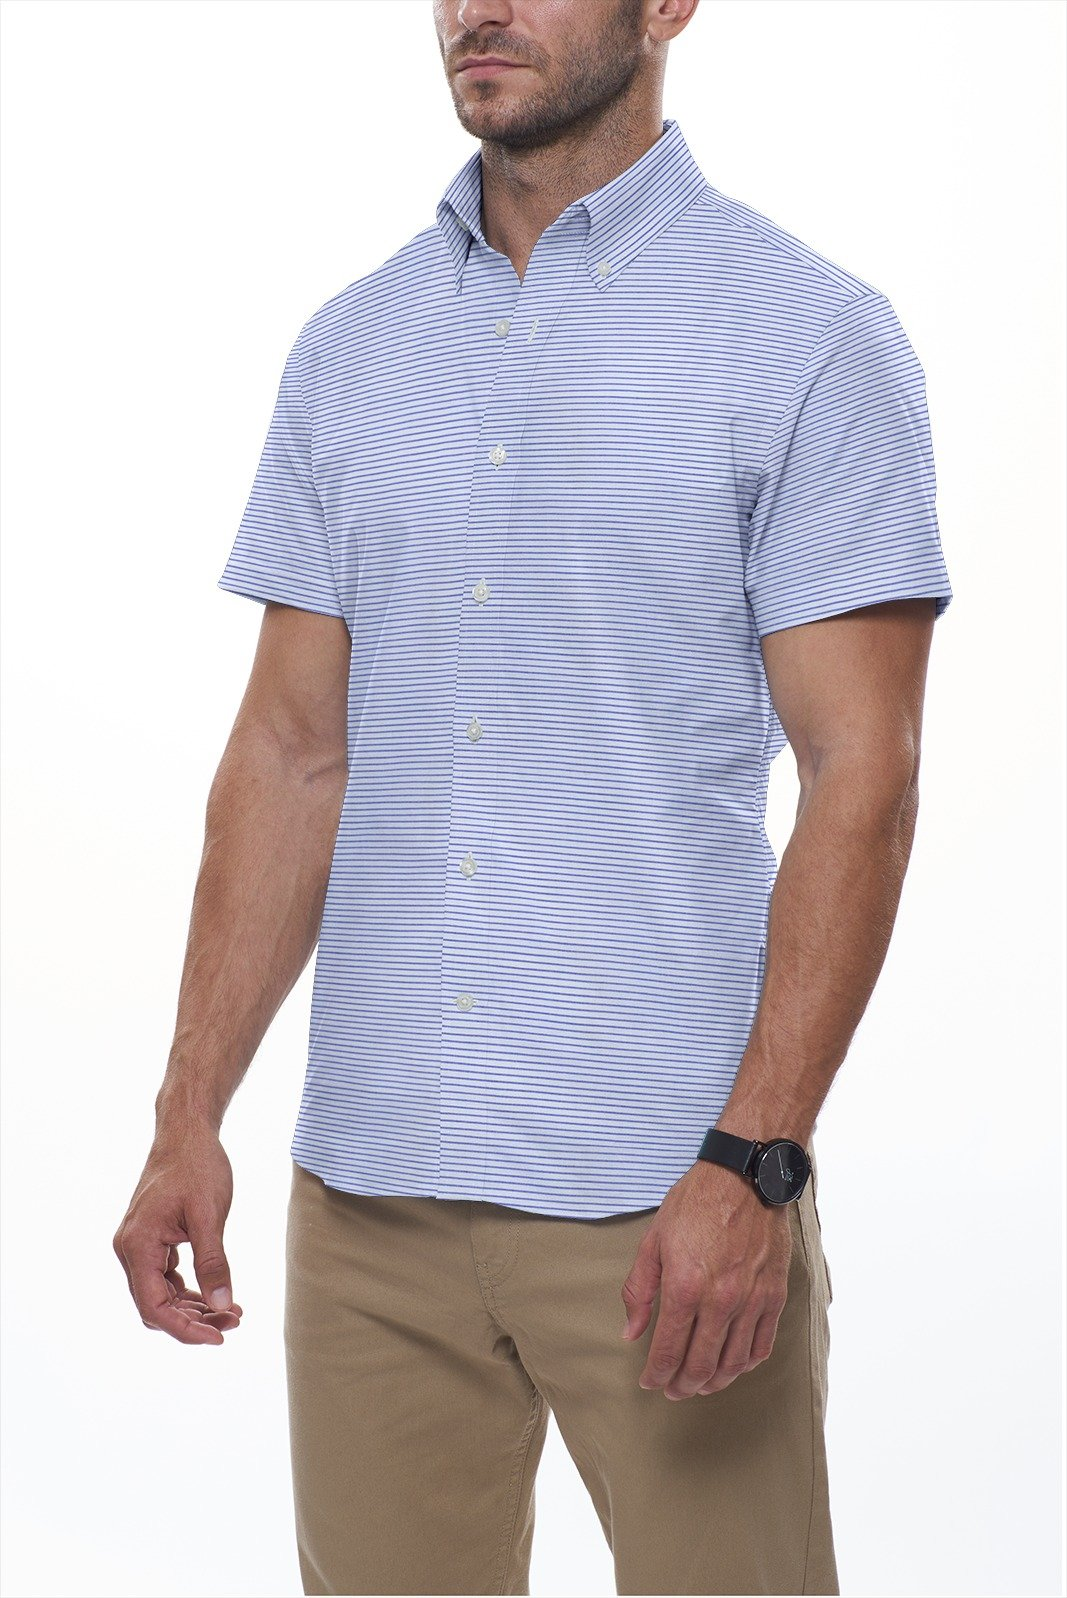 Cool Blue Horizontal Linen Stripe: Semi-Spread Collar, Short Sleeve